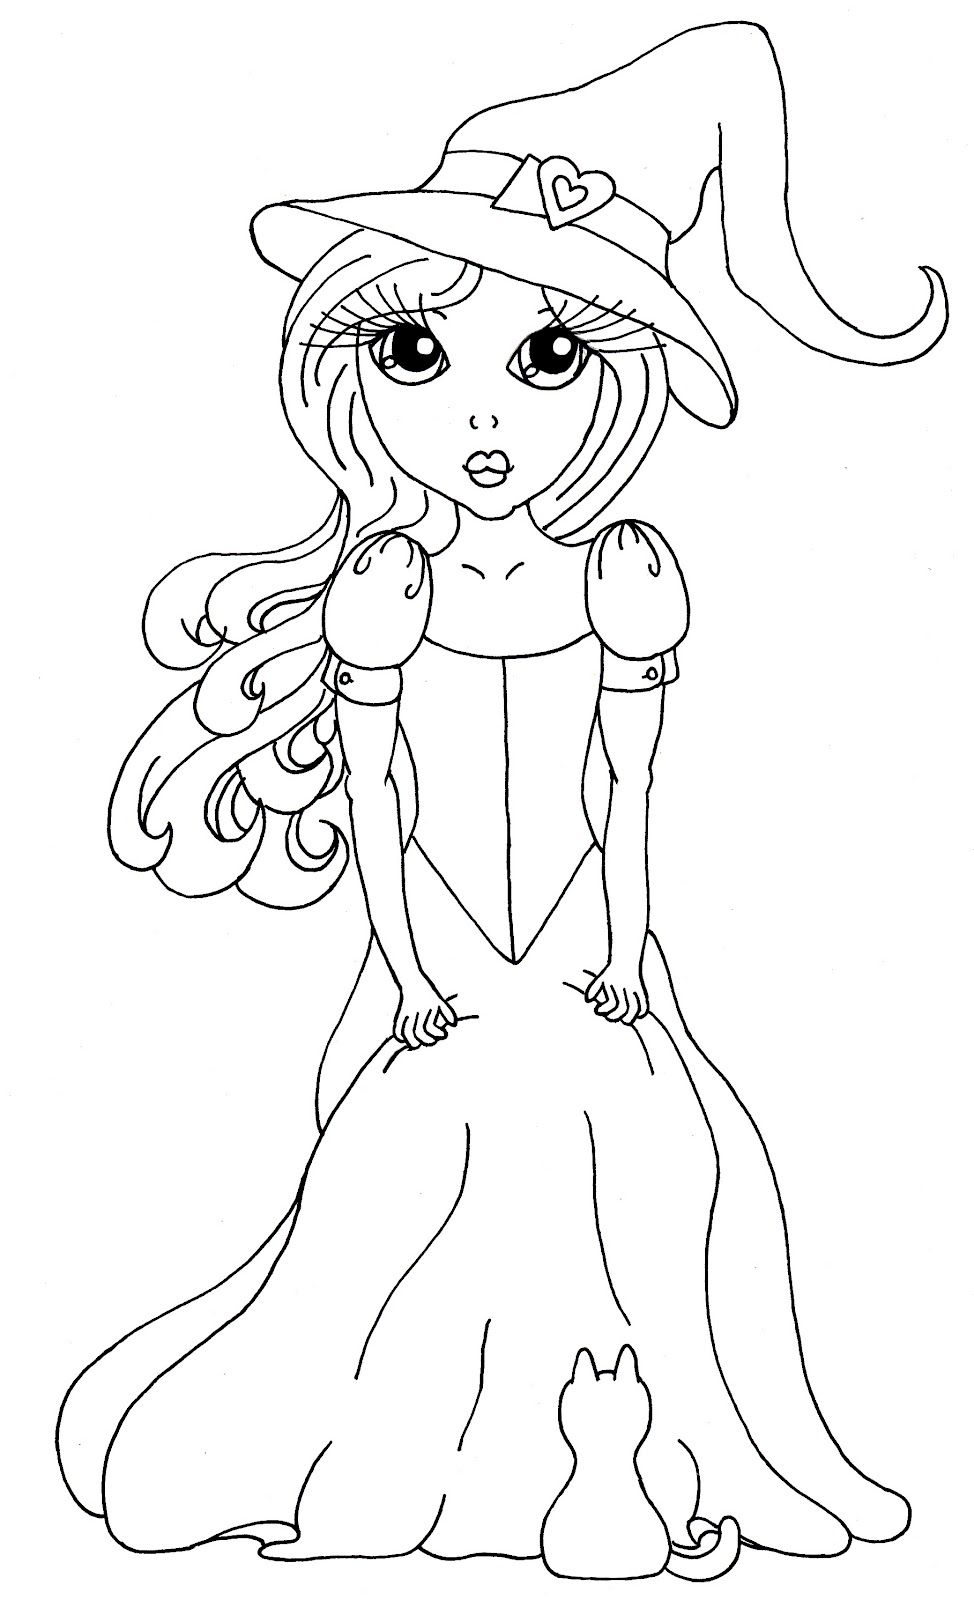 Cuddlebug Cuties Josephine The Stylish Witch Halloween Coloring Book Halloween Coloring Pages Colorful Drawings